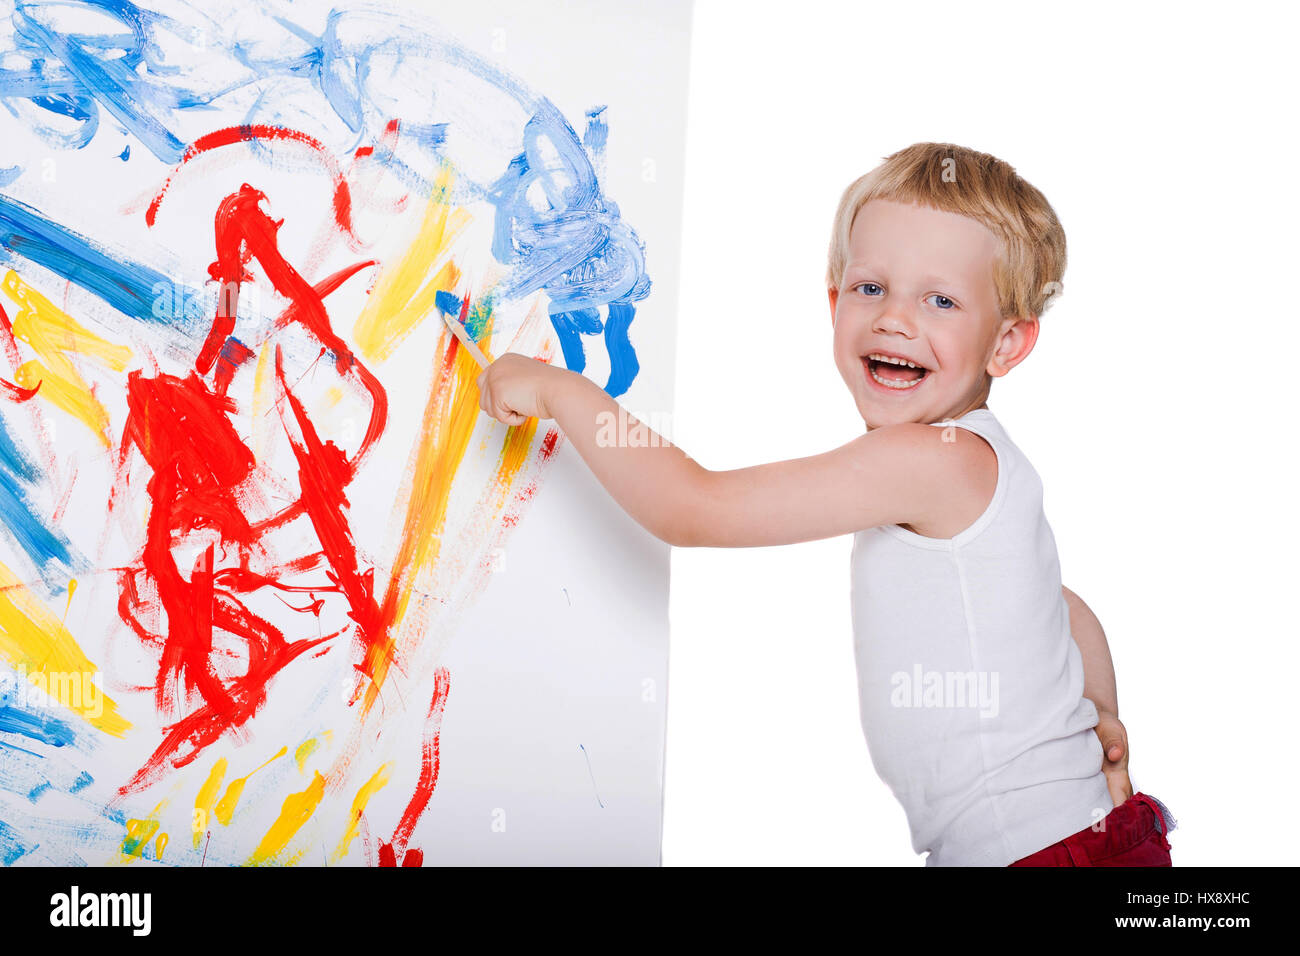 little messy kid painting with paintbrush picture on easel education creativity school preschool studio portrait over white background - Picture For Kid Painting